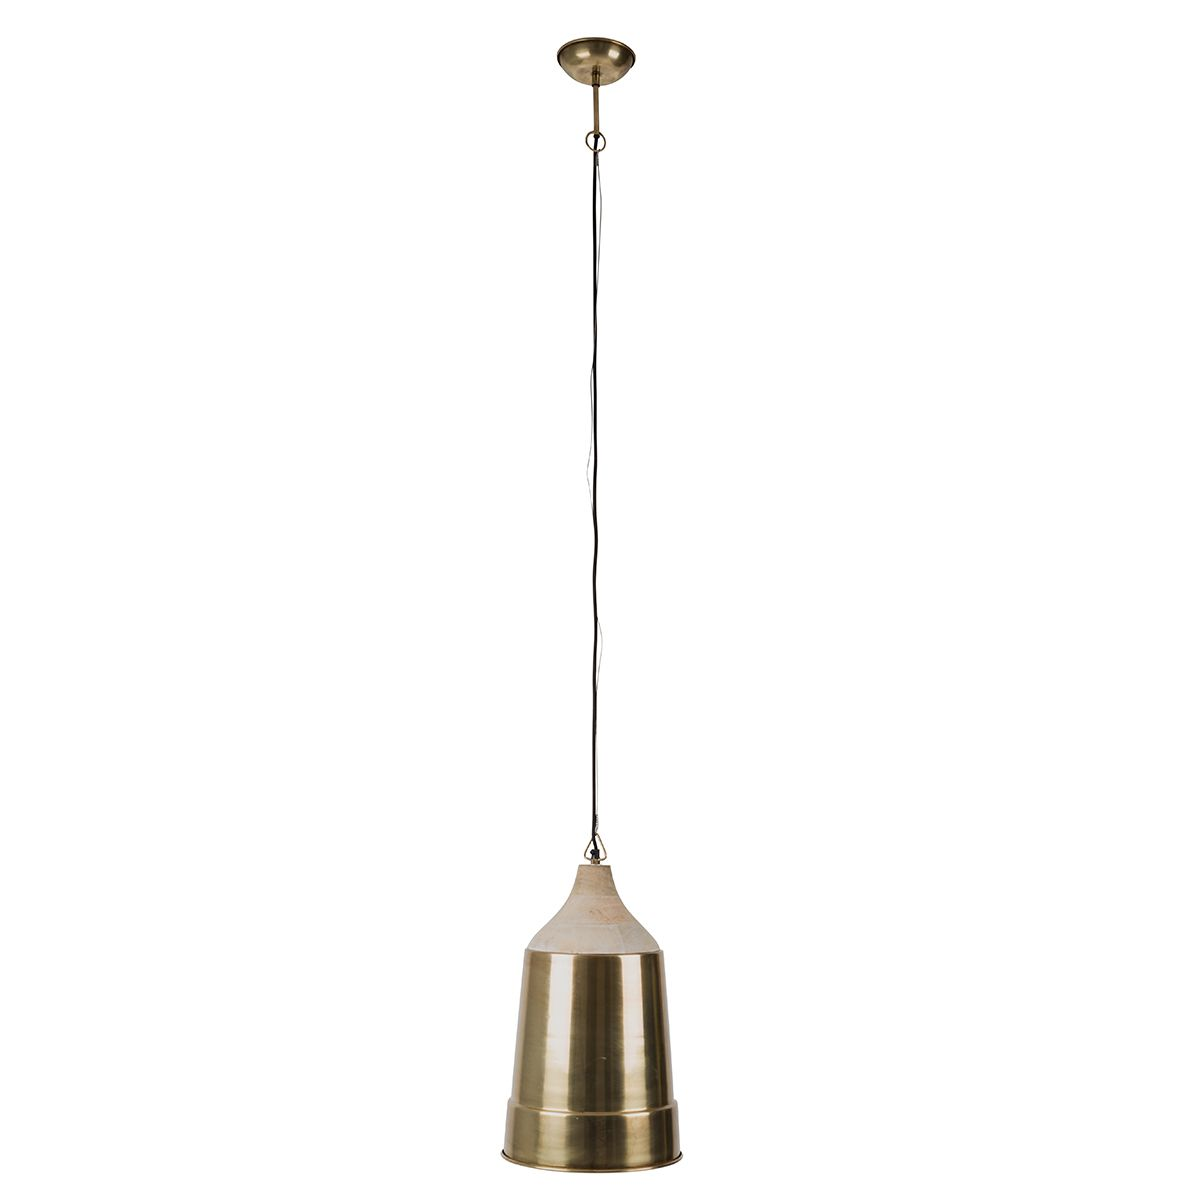 Suspension cloche XL en métal et manguier Wood Dutchbone - laiton